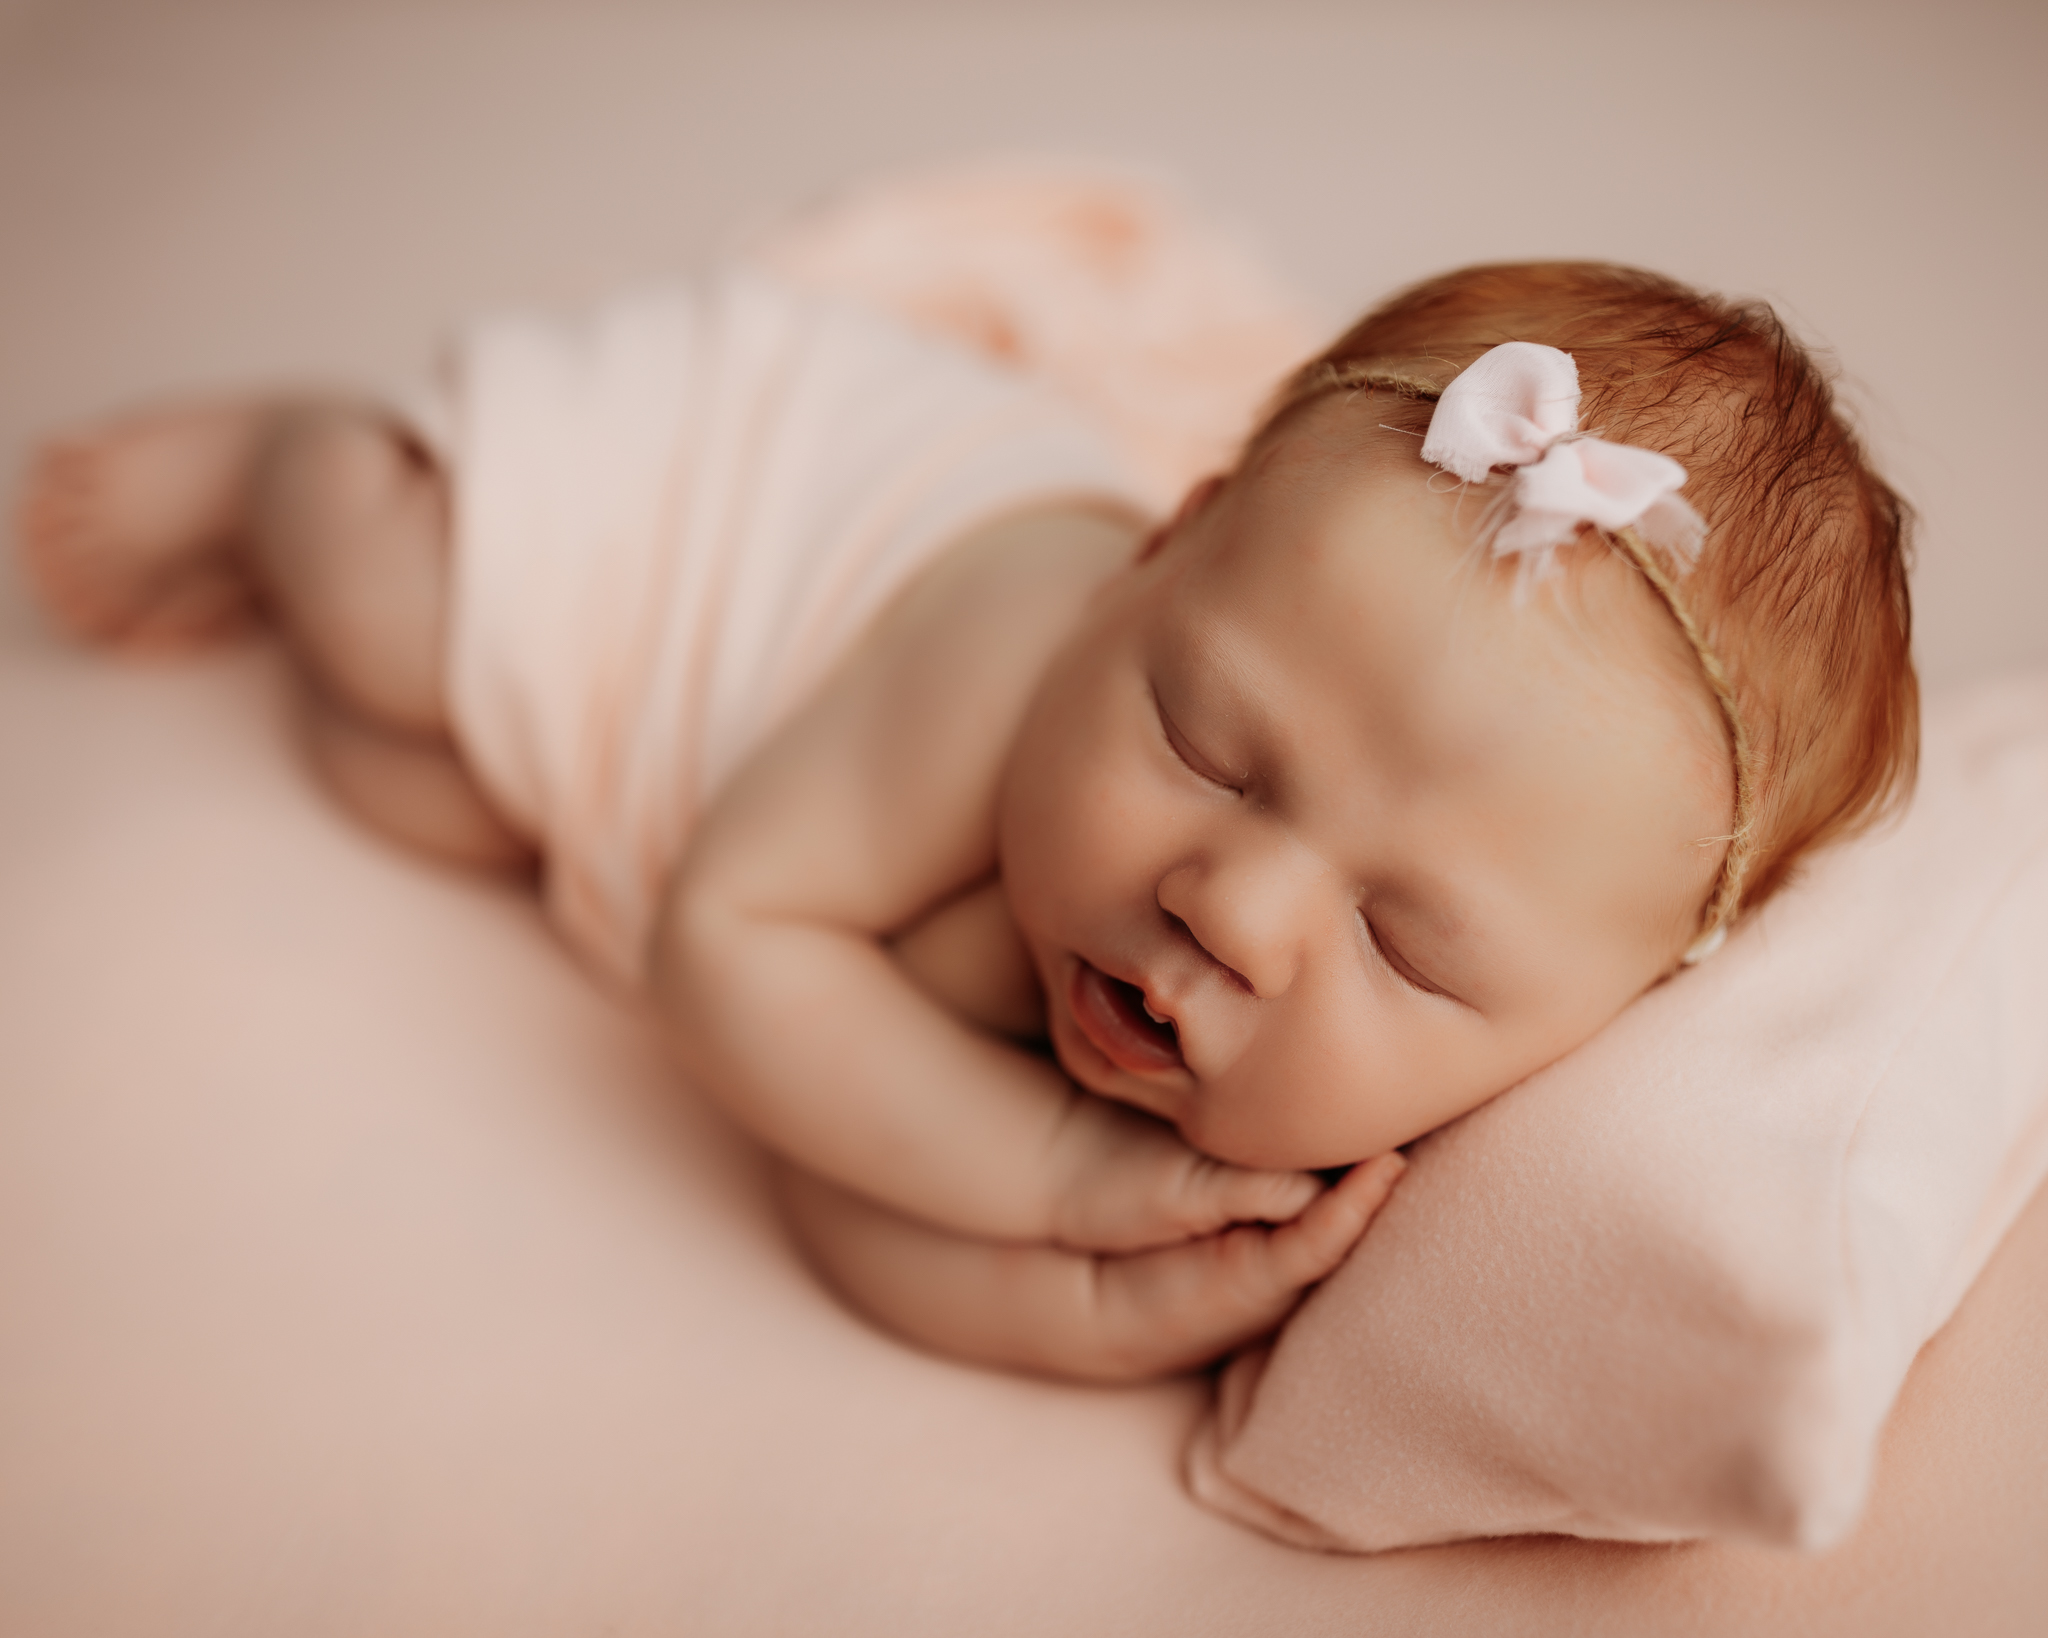 NWA newborn photography session on pink backdrop with baby in side laying pose with pillow under her head